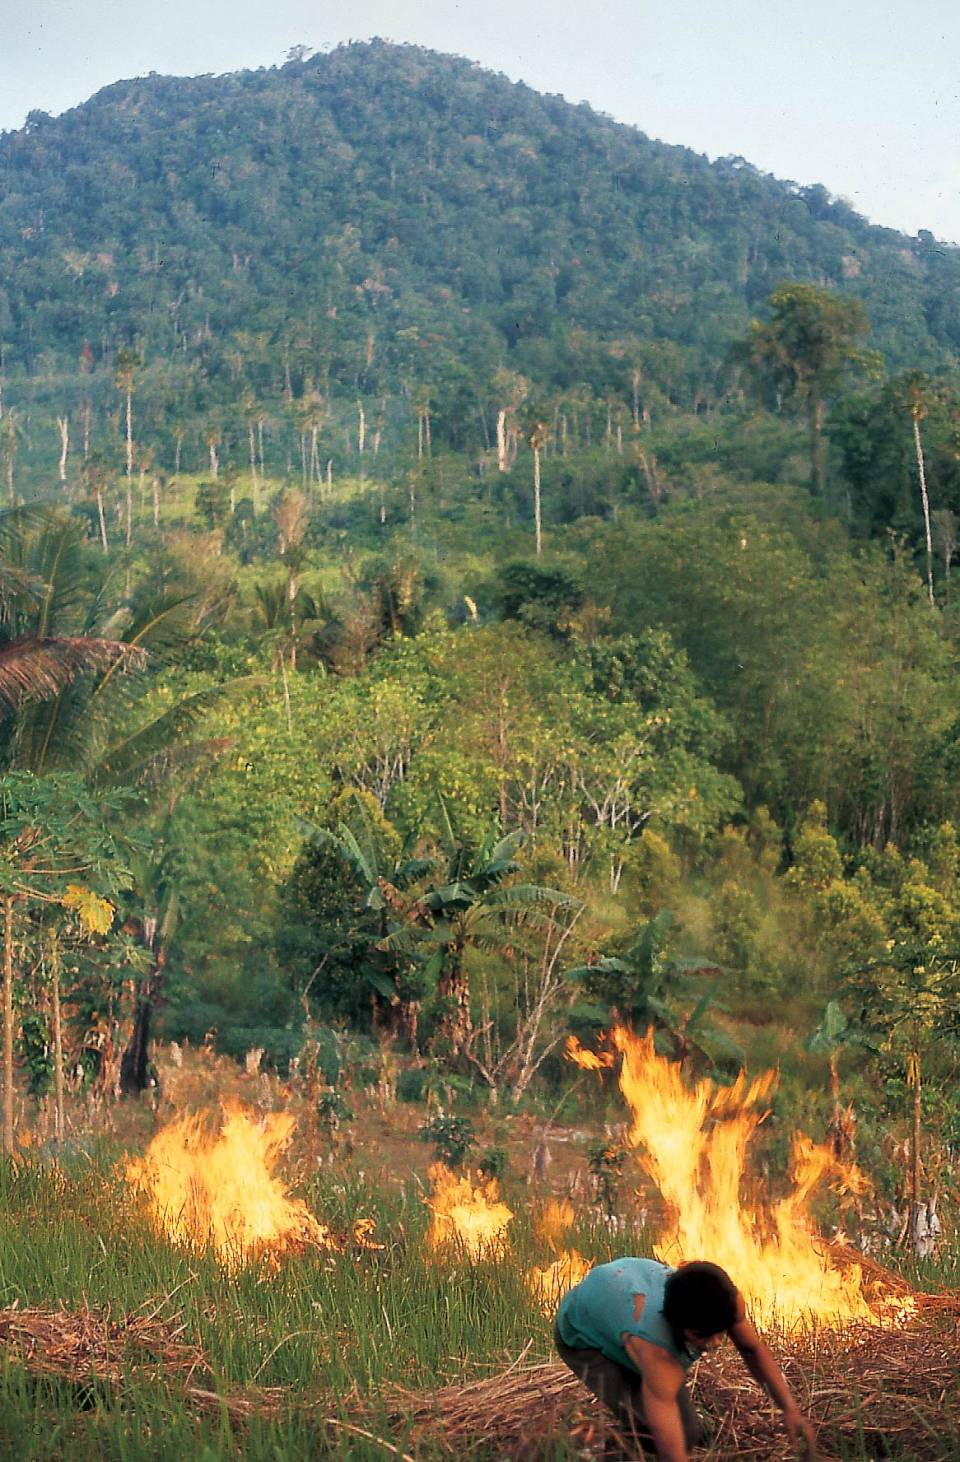 Deforestation is largely responsible for two of the four novel viruses to emerge in the past 50 years: Ebola and SARS. Part of preventing the next global pandemic is creating economic incentives to end practices like the slash-and-burn deforestation seen here, argue a team of researchers in the current issue of Science. Photo by Margaret Kinnaird, WWF International